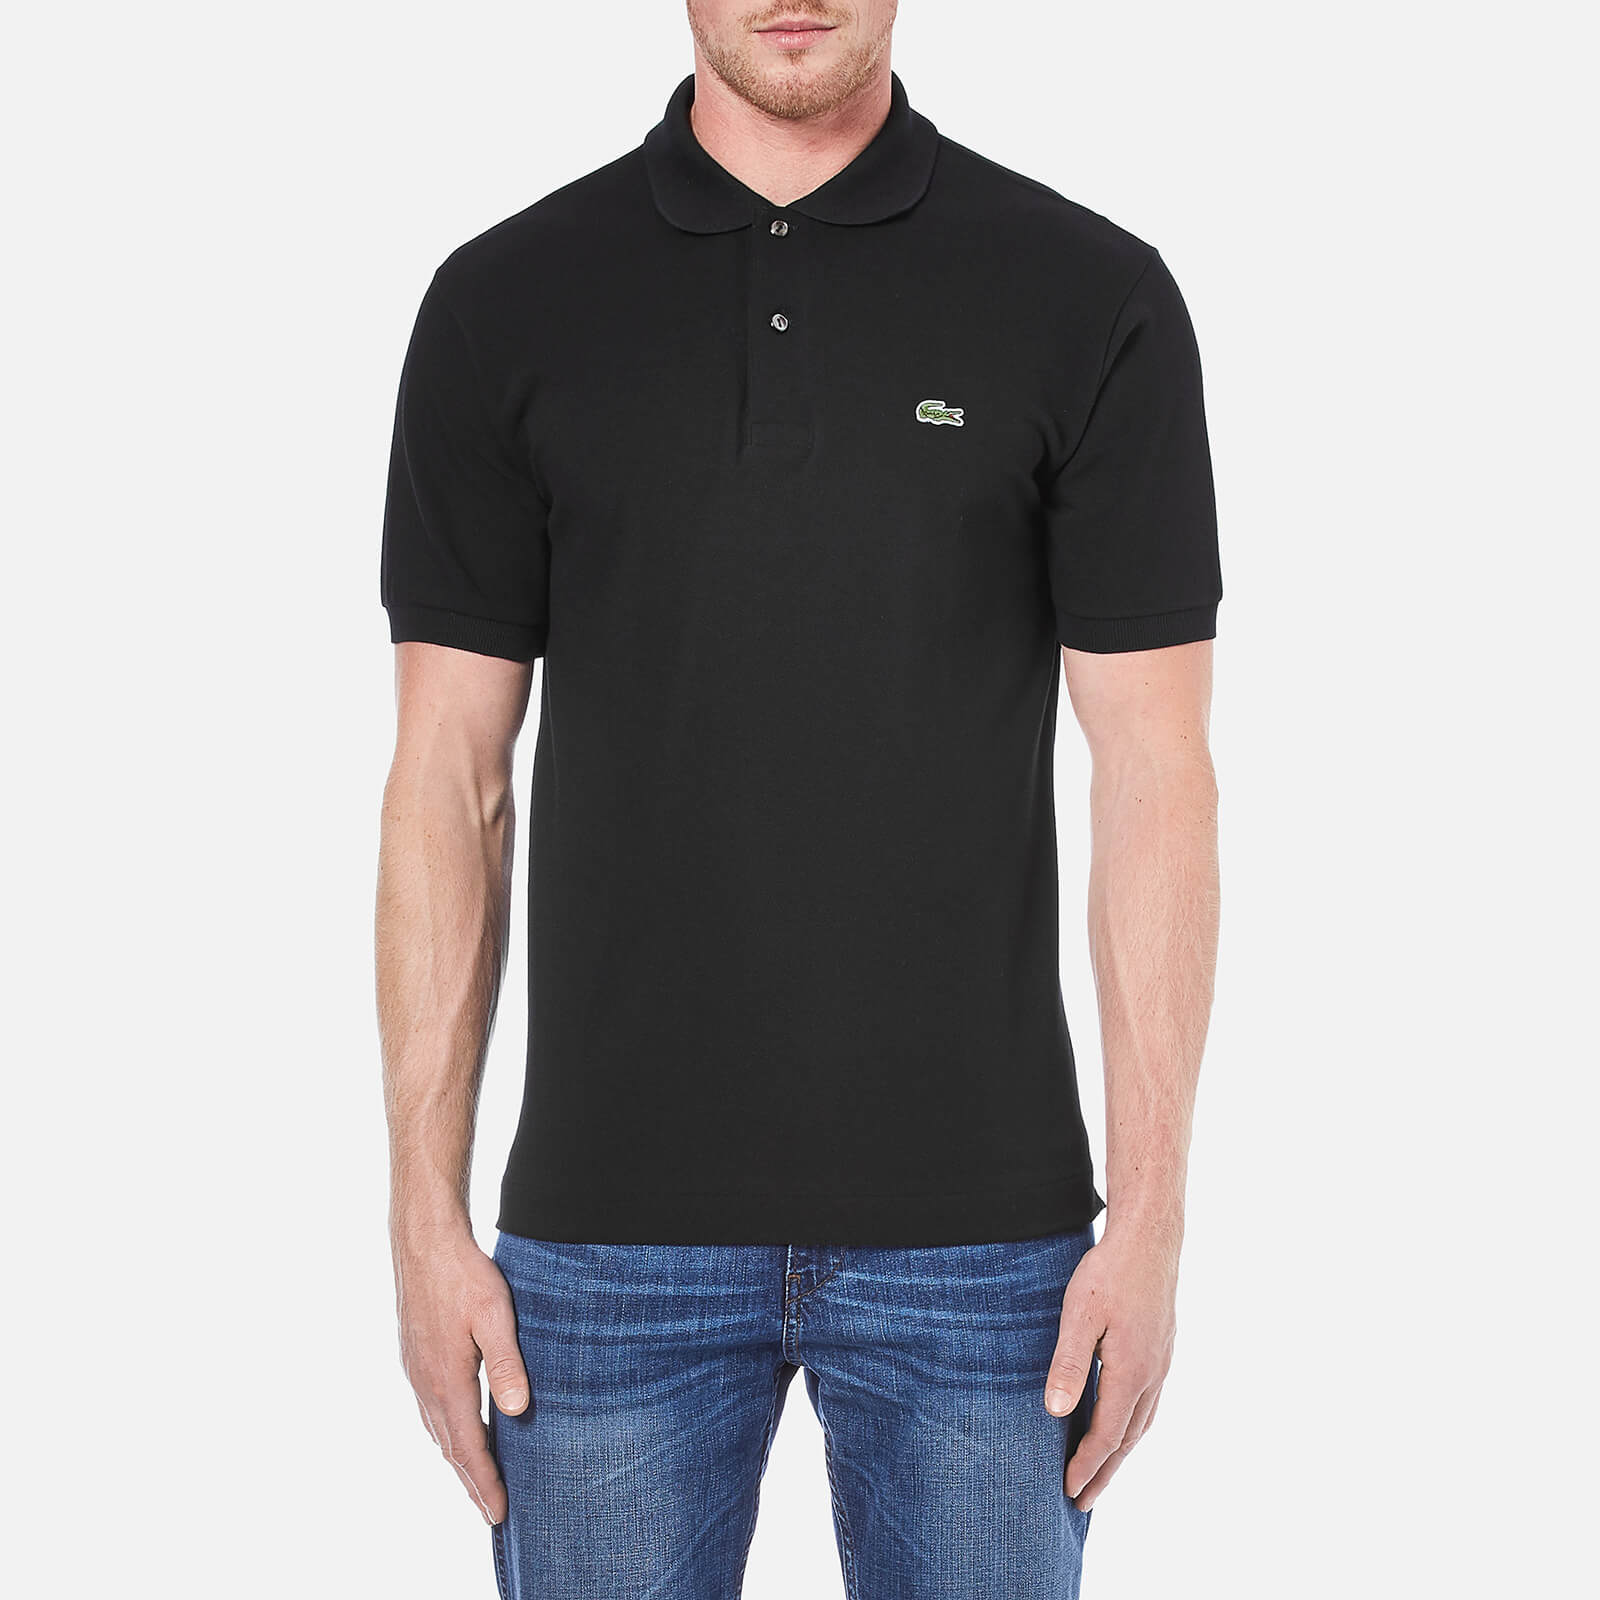 d8f32b8db Lacoste Men s Classic Fit Pique Polo Shirt - Noir